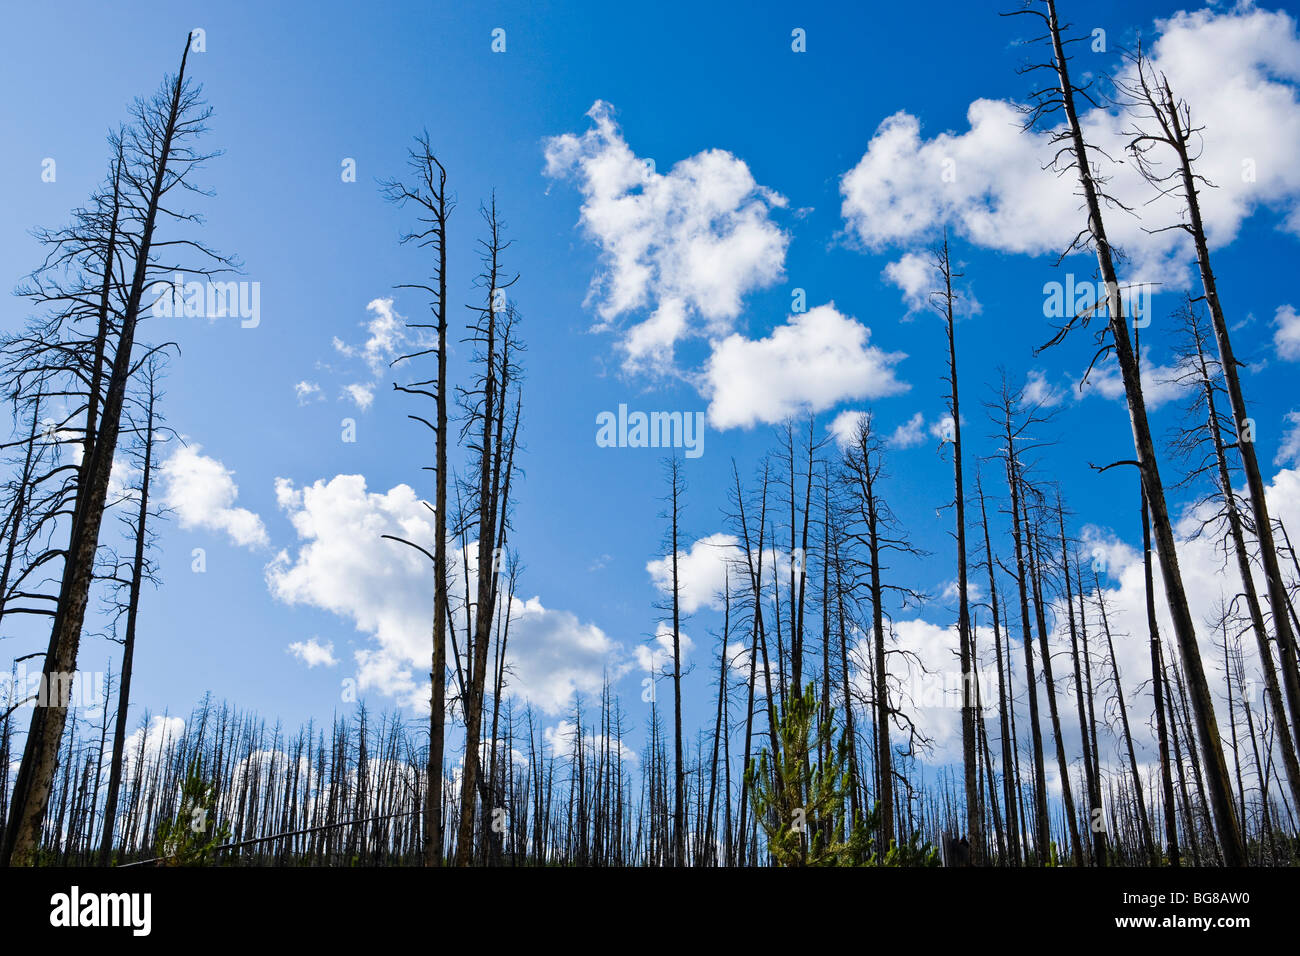 Scorched trees and new growth after a forest fire in Yellowstone